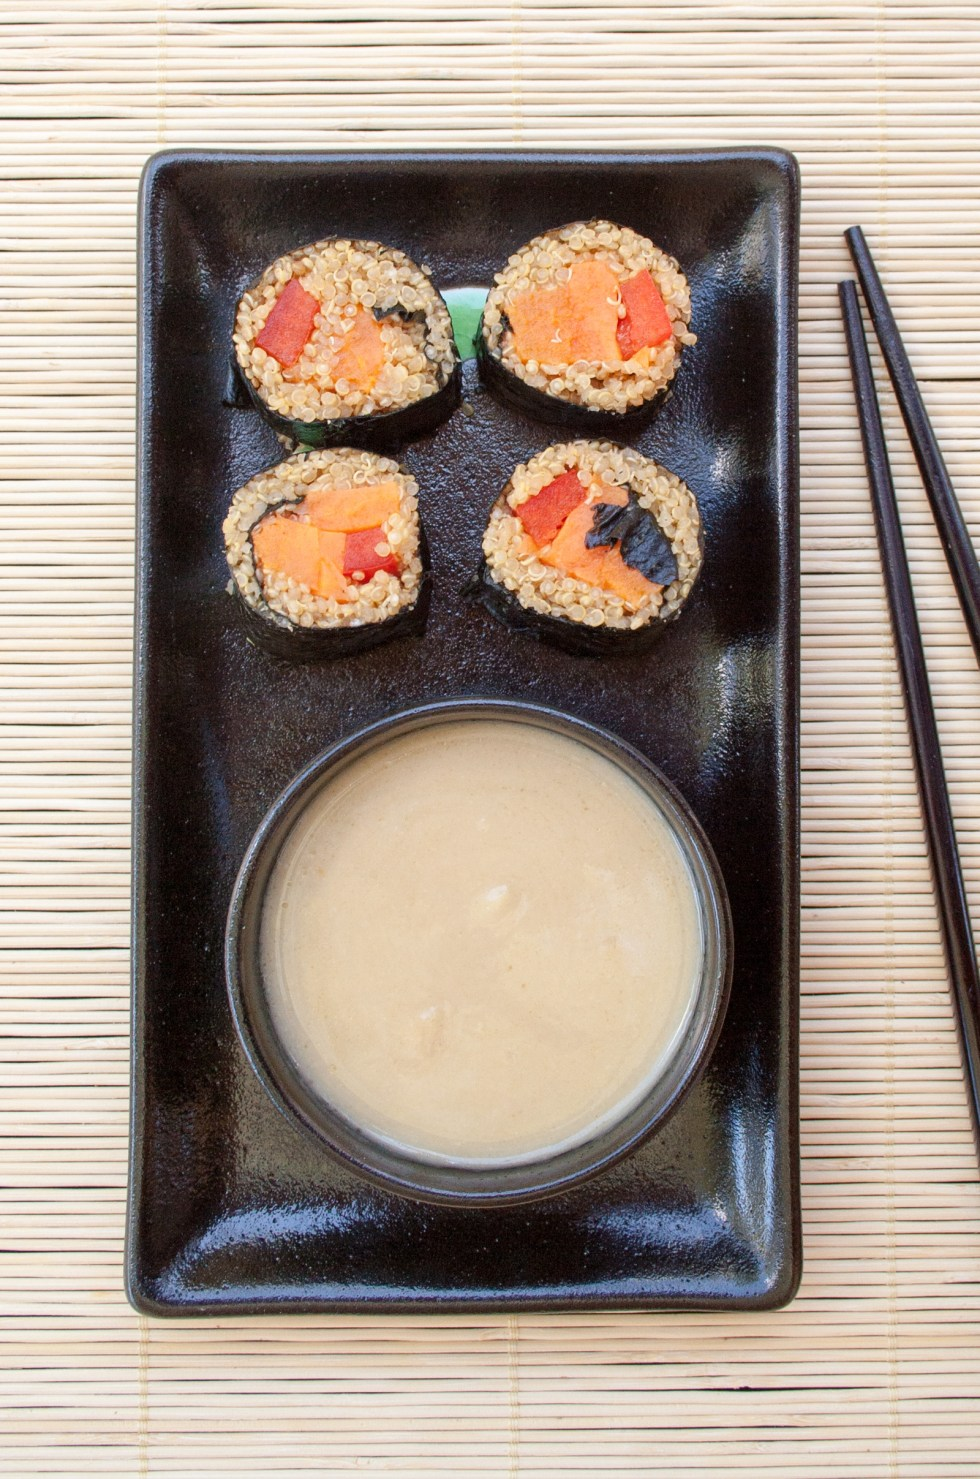 Sweet Potato Sushi Rolls with Quinoa (vegan, gluten free) - These sweet and savory sushi rolls have a miso ginger dipping sauce. Great as an appetizer or main dish.